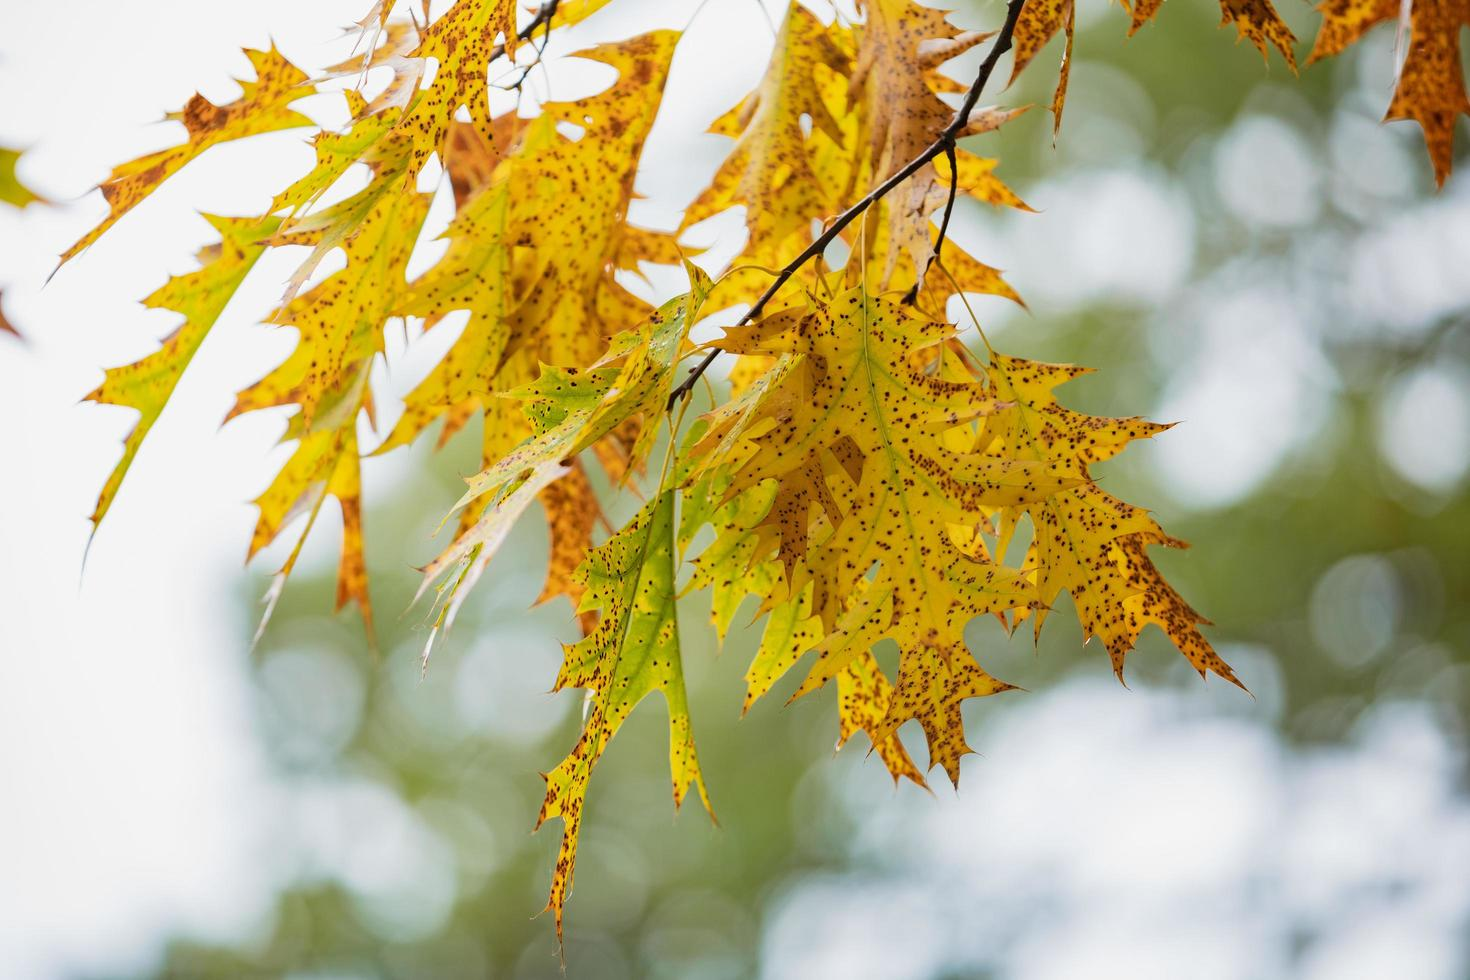 Autumn maple leaves and blue sky background outdoor photo